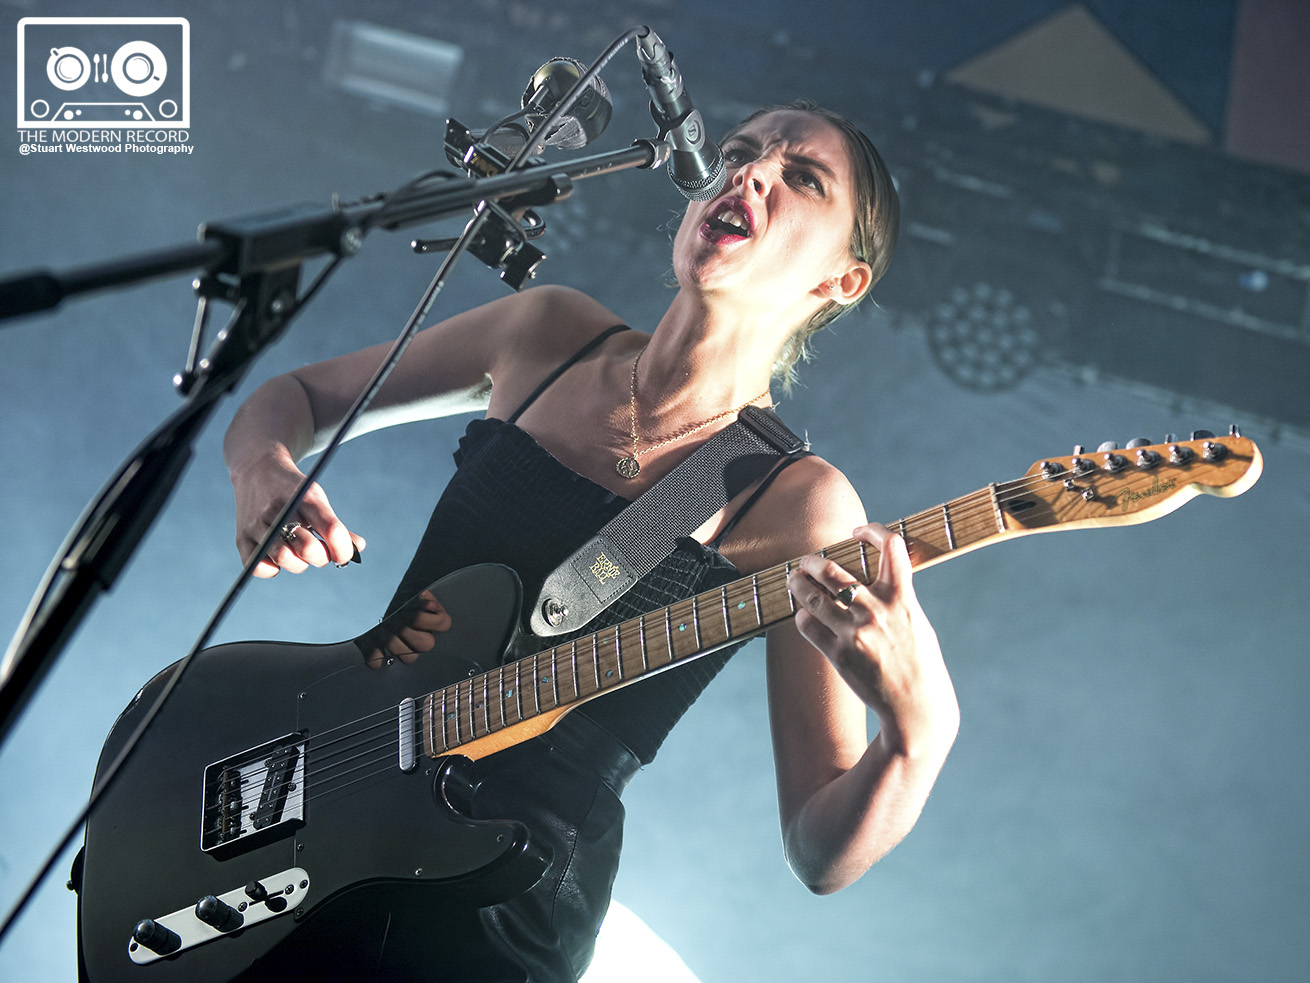 WOLF ALICE PERFORMING AT GLASGOW'S BARROWLANDS - 11/11/2017   PICTURE BY: STUART WESTWOOD PHOTOGRAPHY